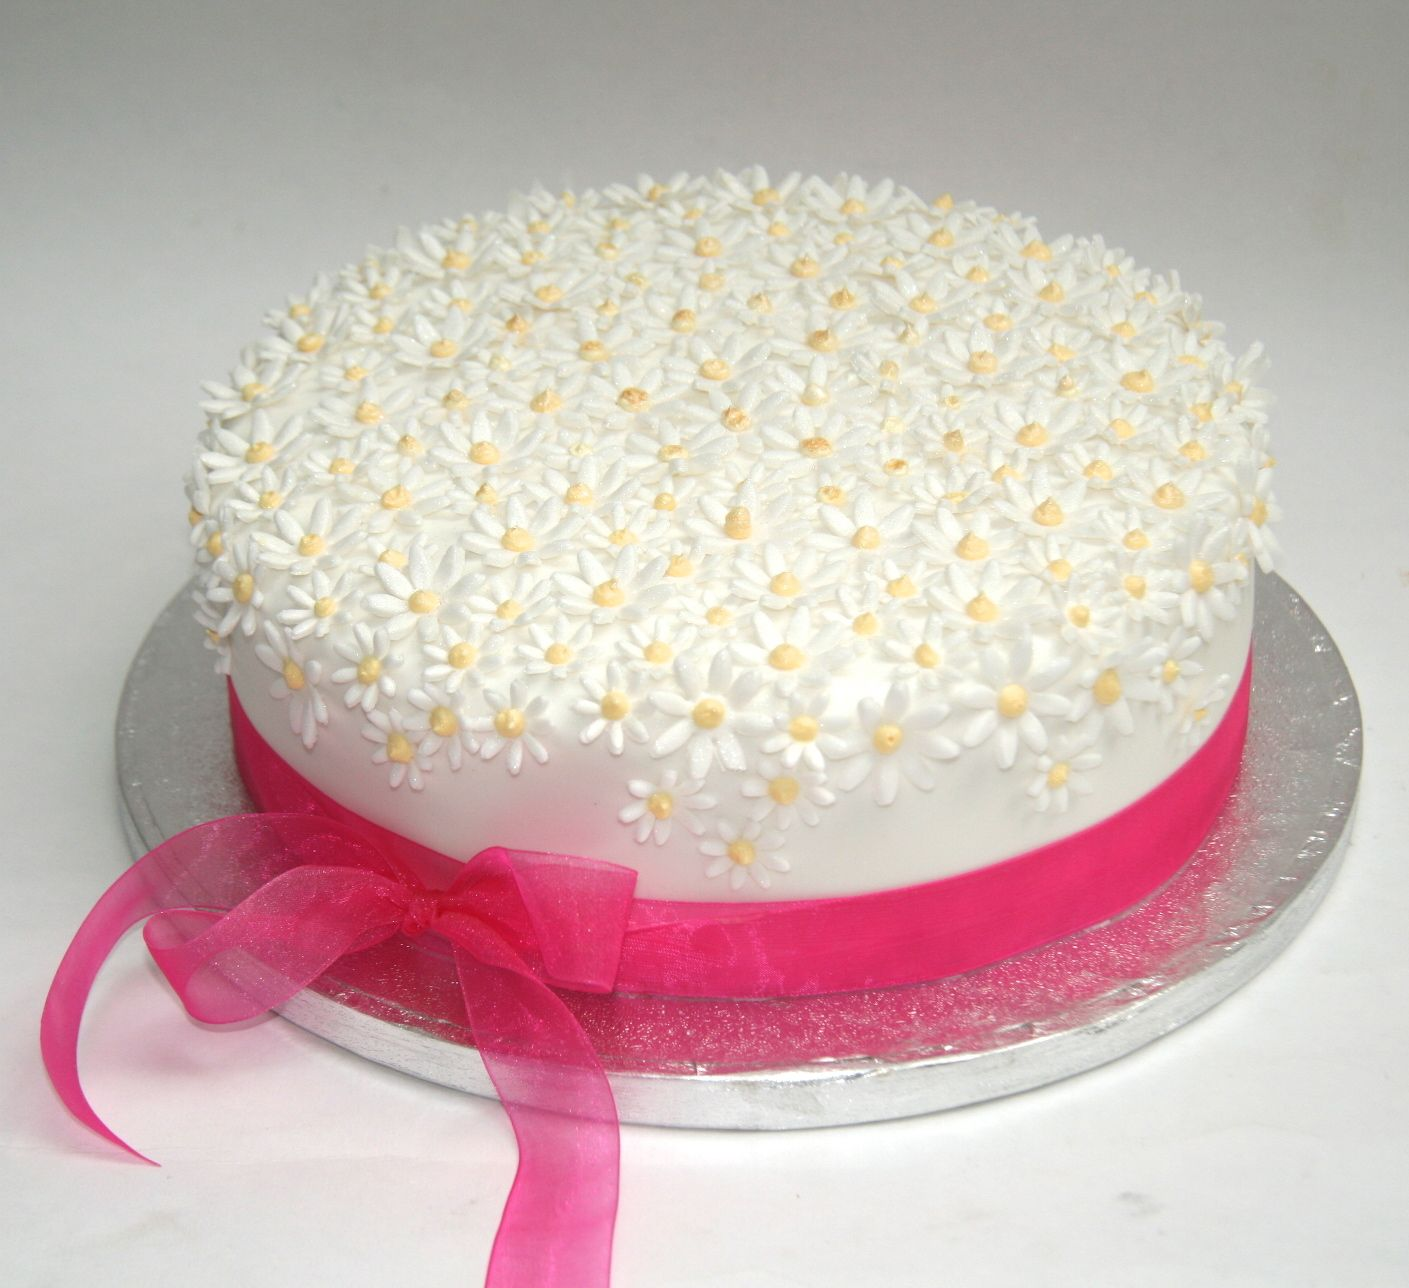 daisy cakes Wedding Cakes Birthday Cakes Simple White